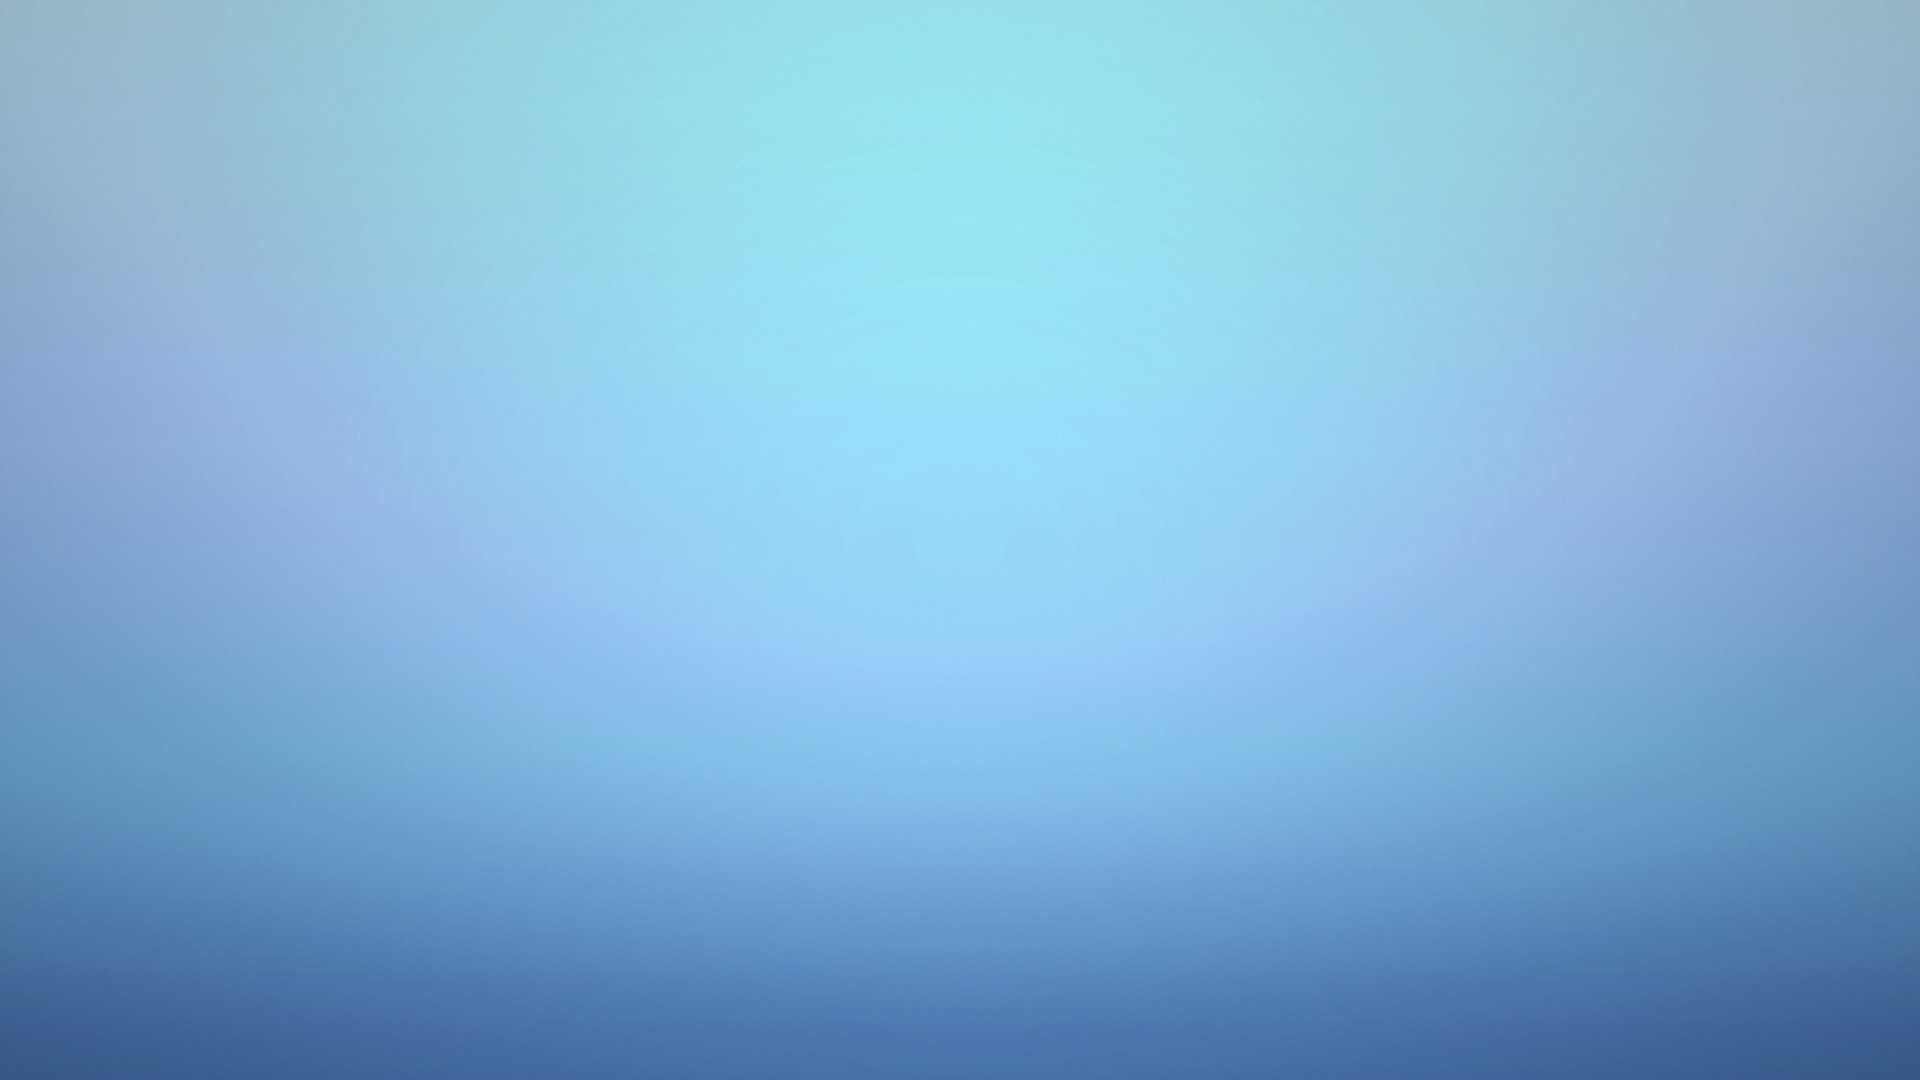 color background ·① download free awesome full hd backgrounds for